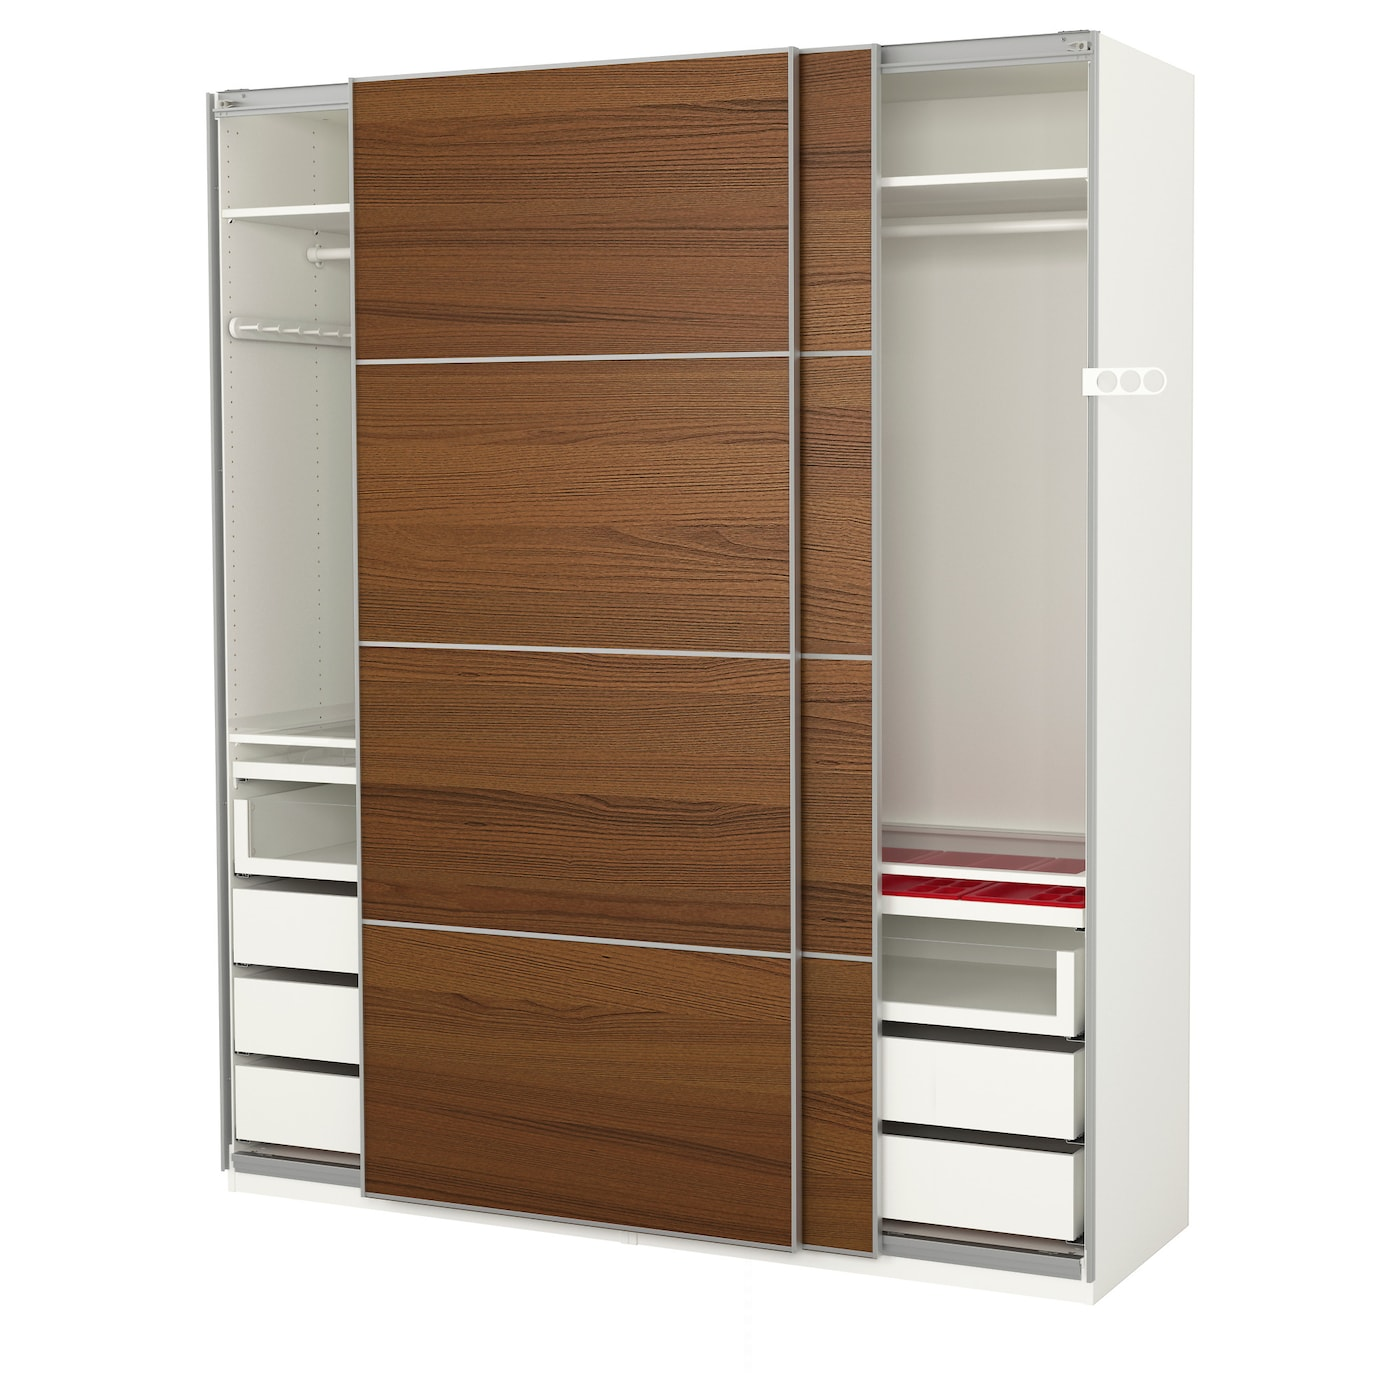 pax wardrobe white ilseng brown stained ash veneer 200x66x236 cm ikea. Black Bedroom Furniture Sets. Home Design Ideas